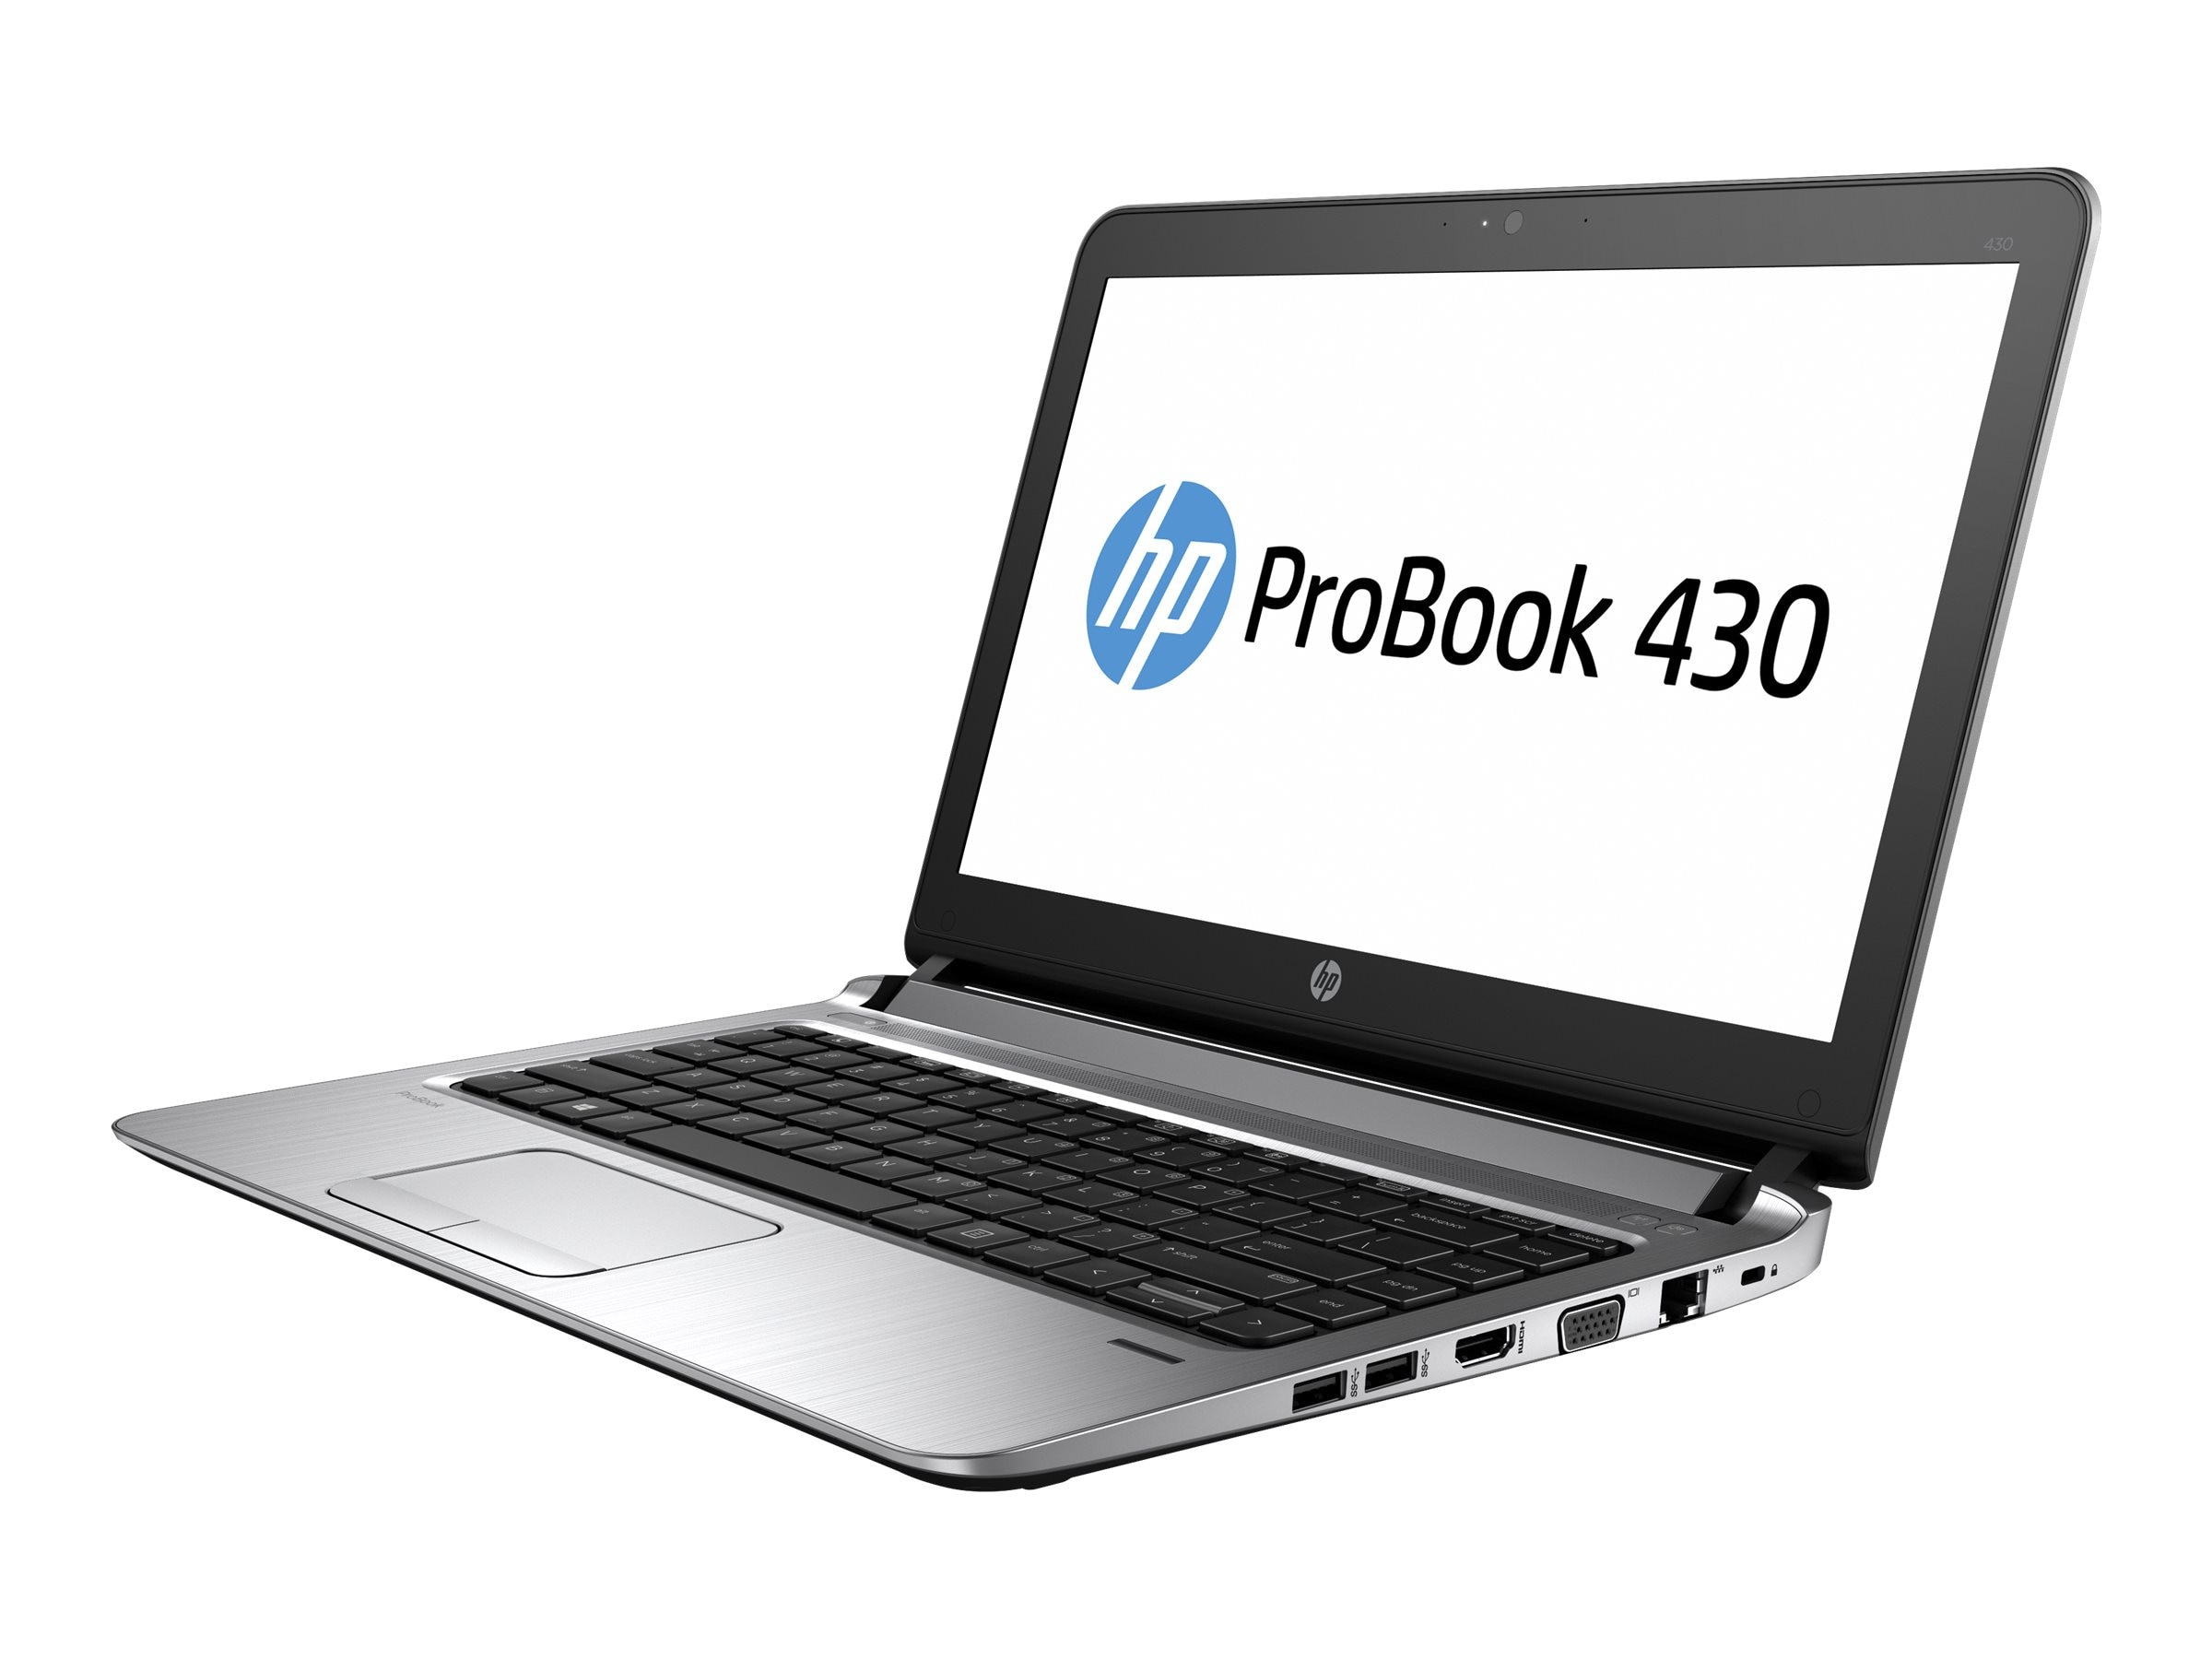 HP Smart Buy EliteBook 430 G3 2.3GHz Core i3 13.3in display, T1B61UT#ABA, 30731429, Notebooks